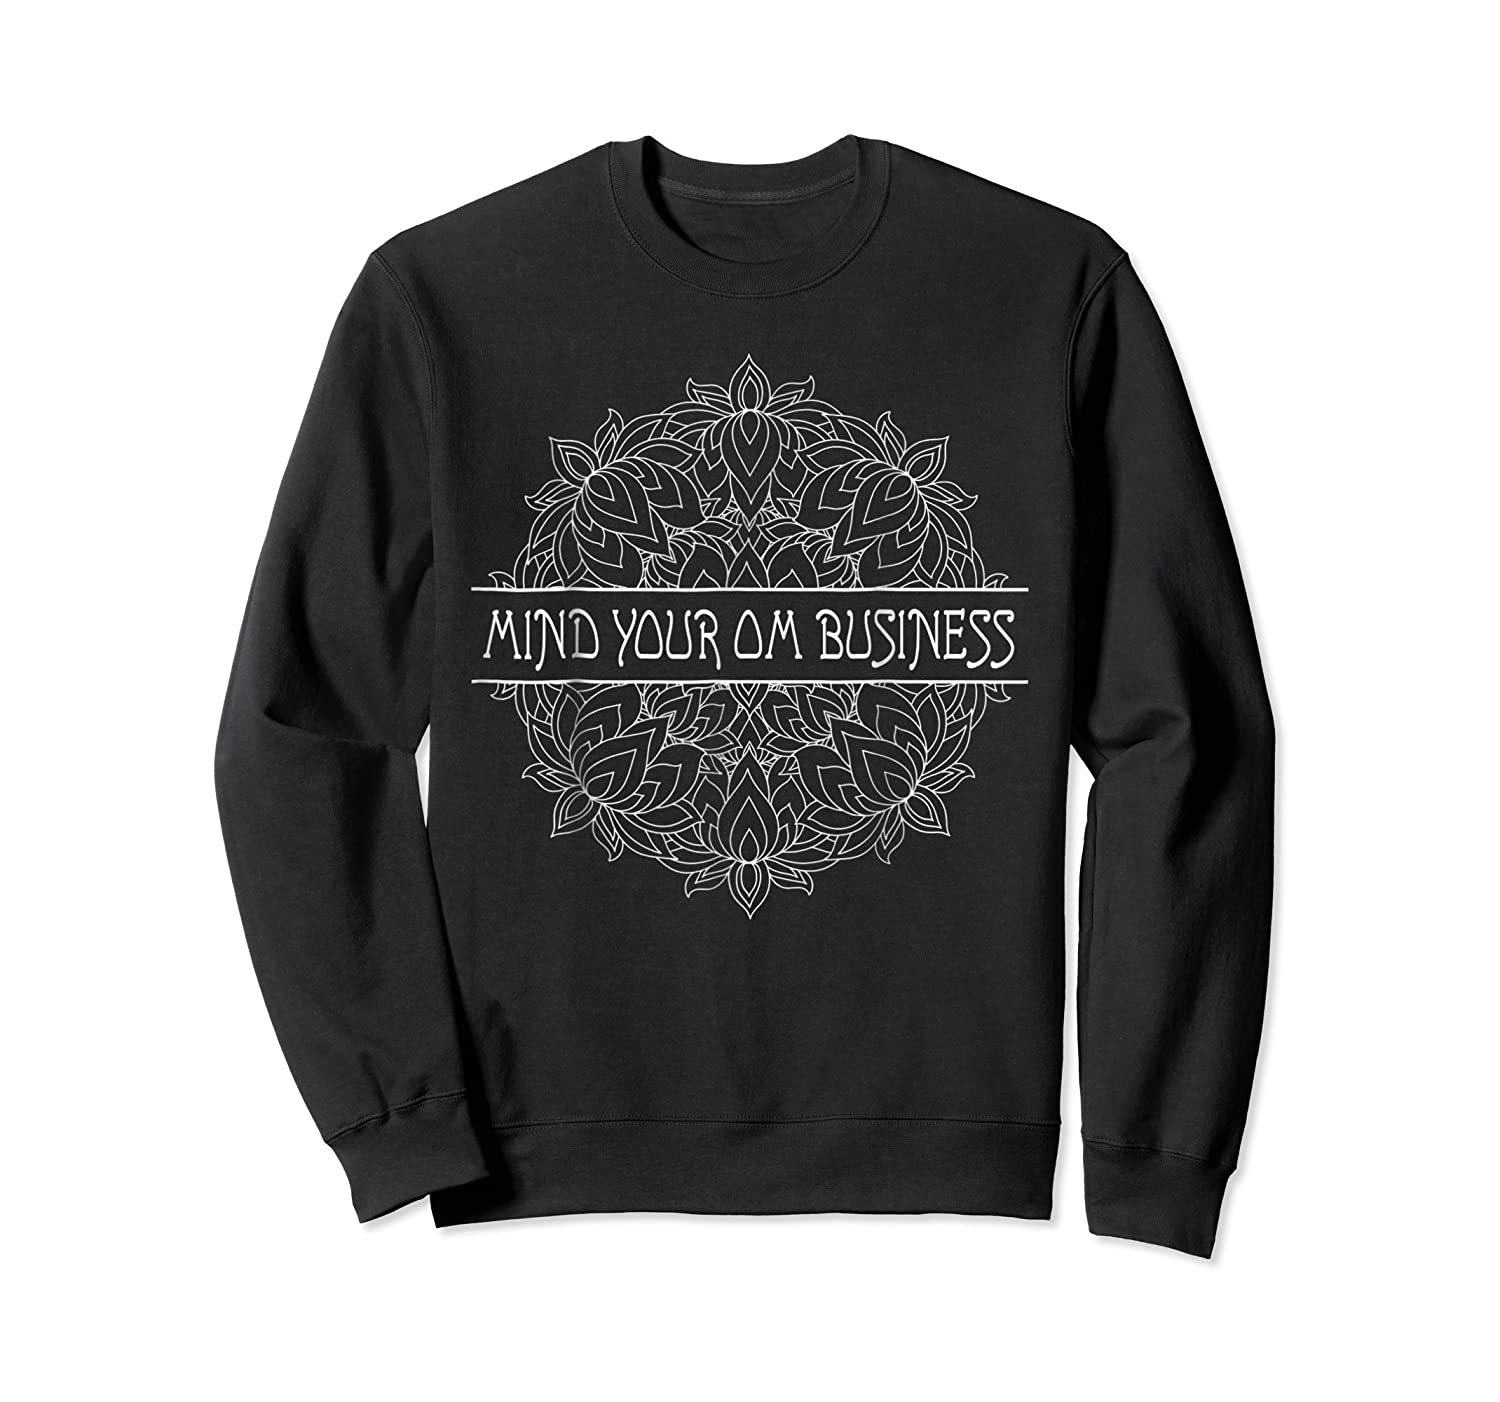 Mind Your Om Business Geometric Graphic Shirts Crewneck Sweater